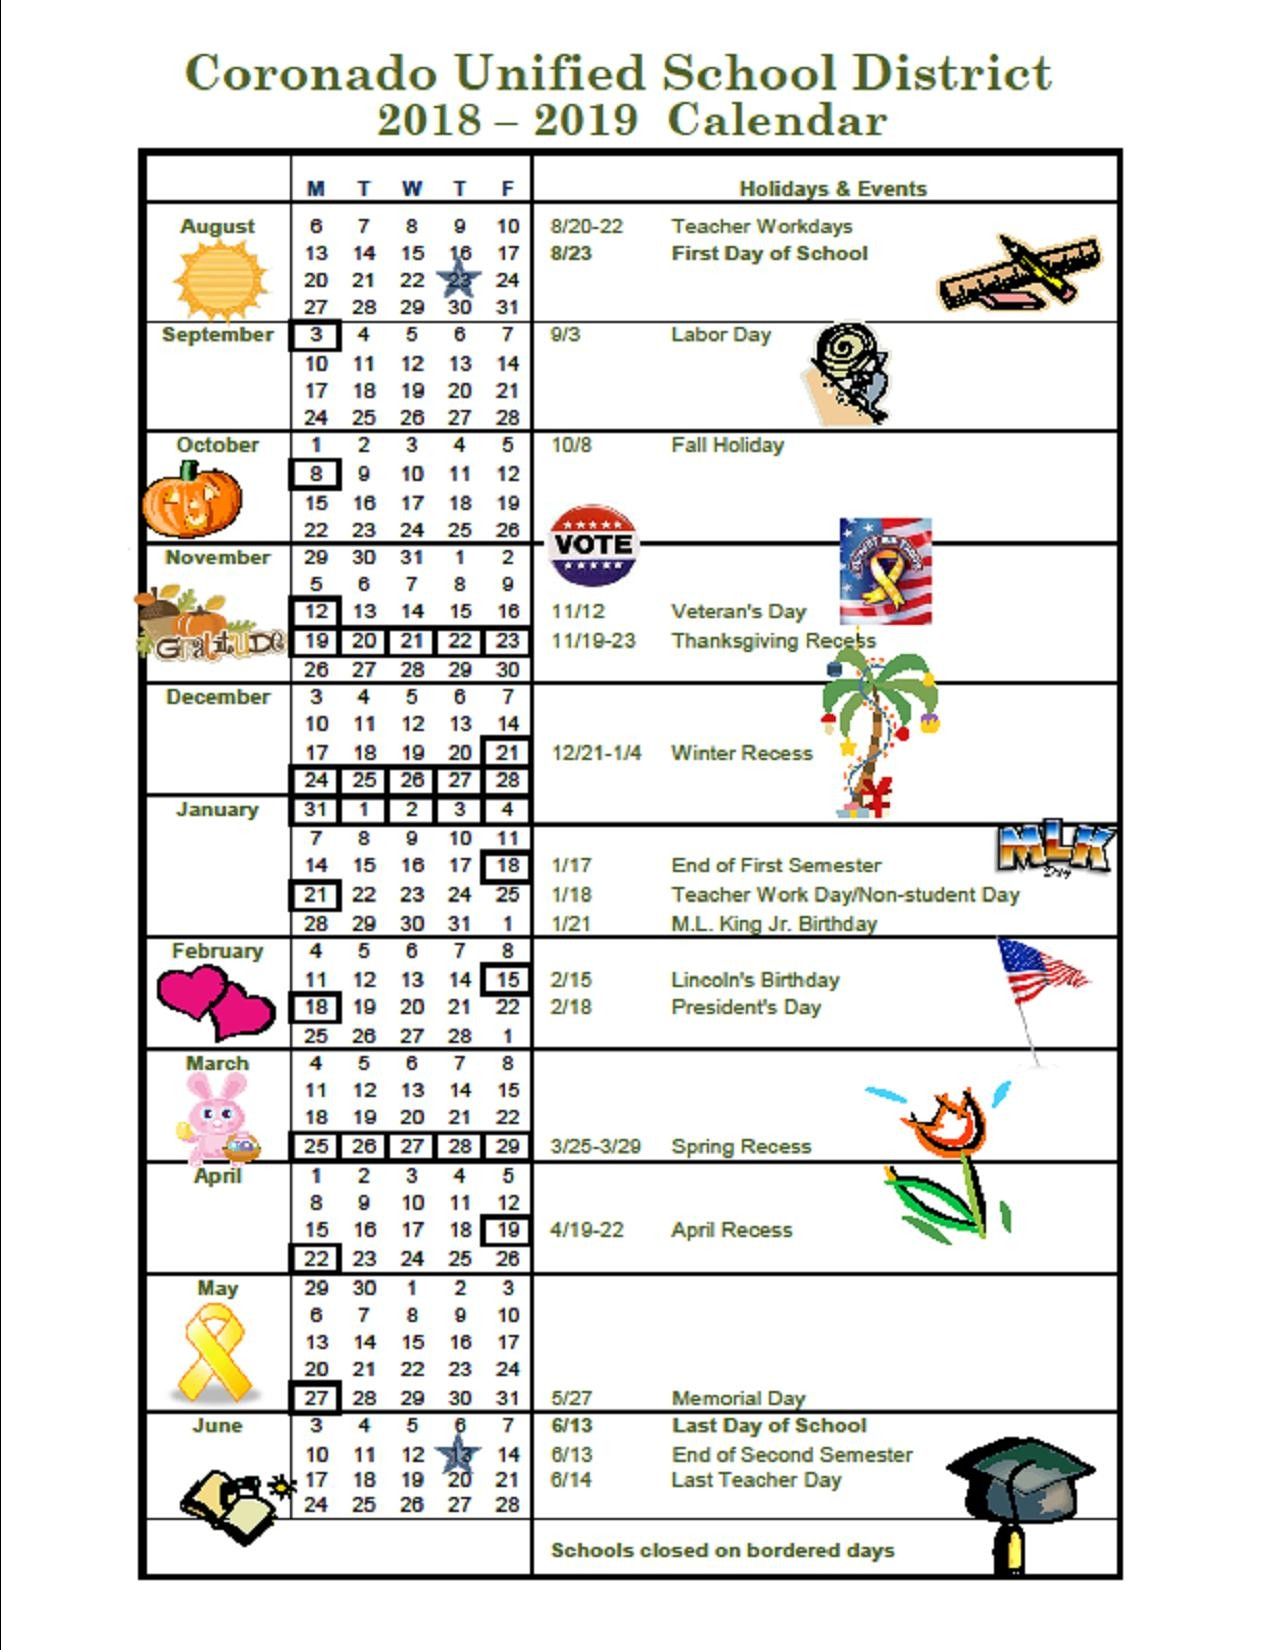 Calendario Escolar 2019 Kinder Más Recientemente Liberado About Academic Calendar & Bell Schedule Of Calendario Escolar 2019 Kinder Más Reciente 2018 2019 School Year Calendar Upper Canada District School Board